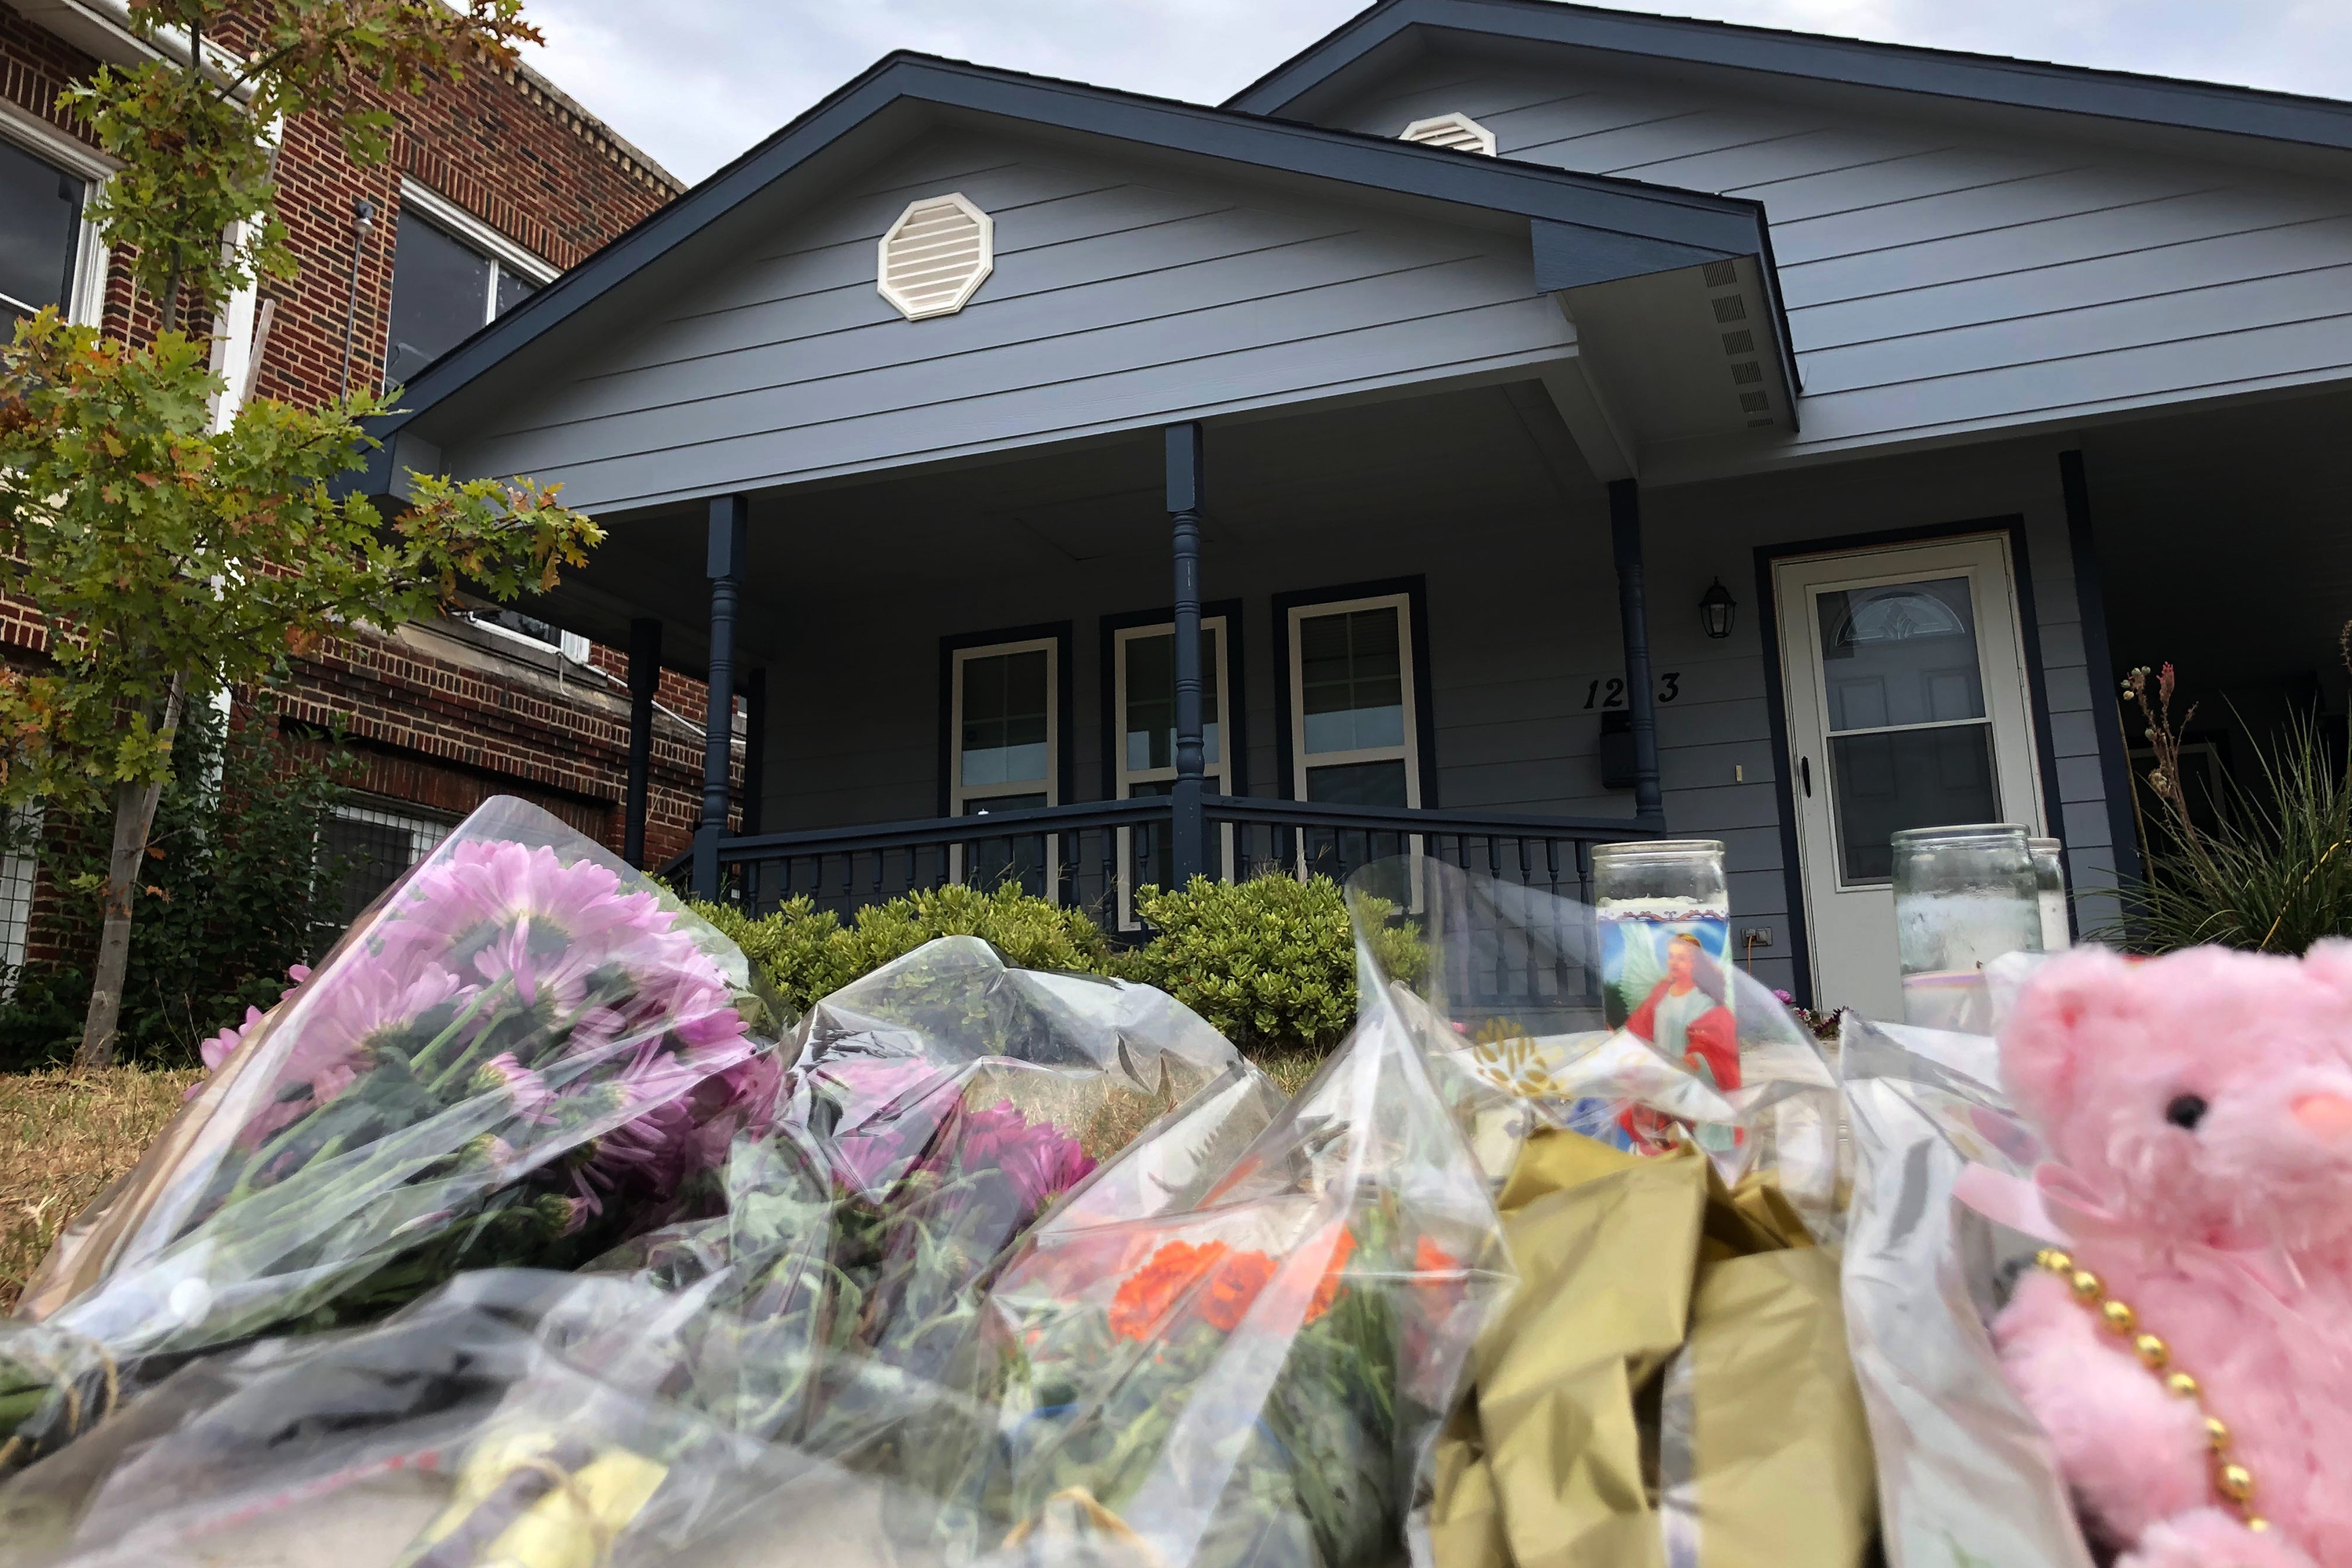 Bouquets of flowers and stuffed animals are piling up outside the Fort Worth home Monday, Oct. 14, 2019, where a 28-year-old black woman was shot to death by a white police officer. Members of the community have brought tributes to the home where Atatiana Jefferson was killed early Saturday by an officer who was responding to a neighbor's report of an open door.